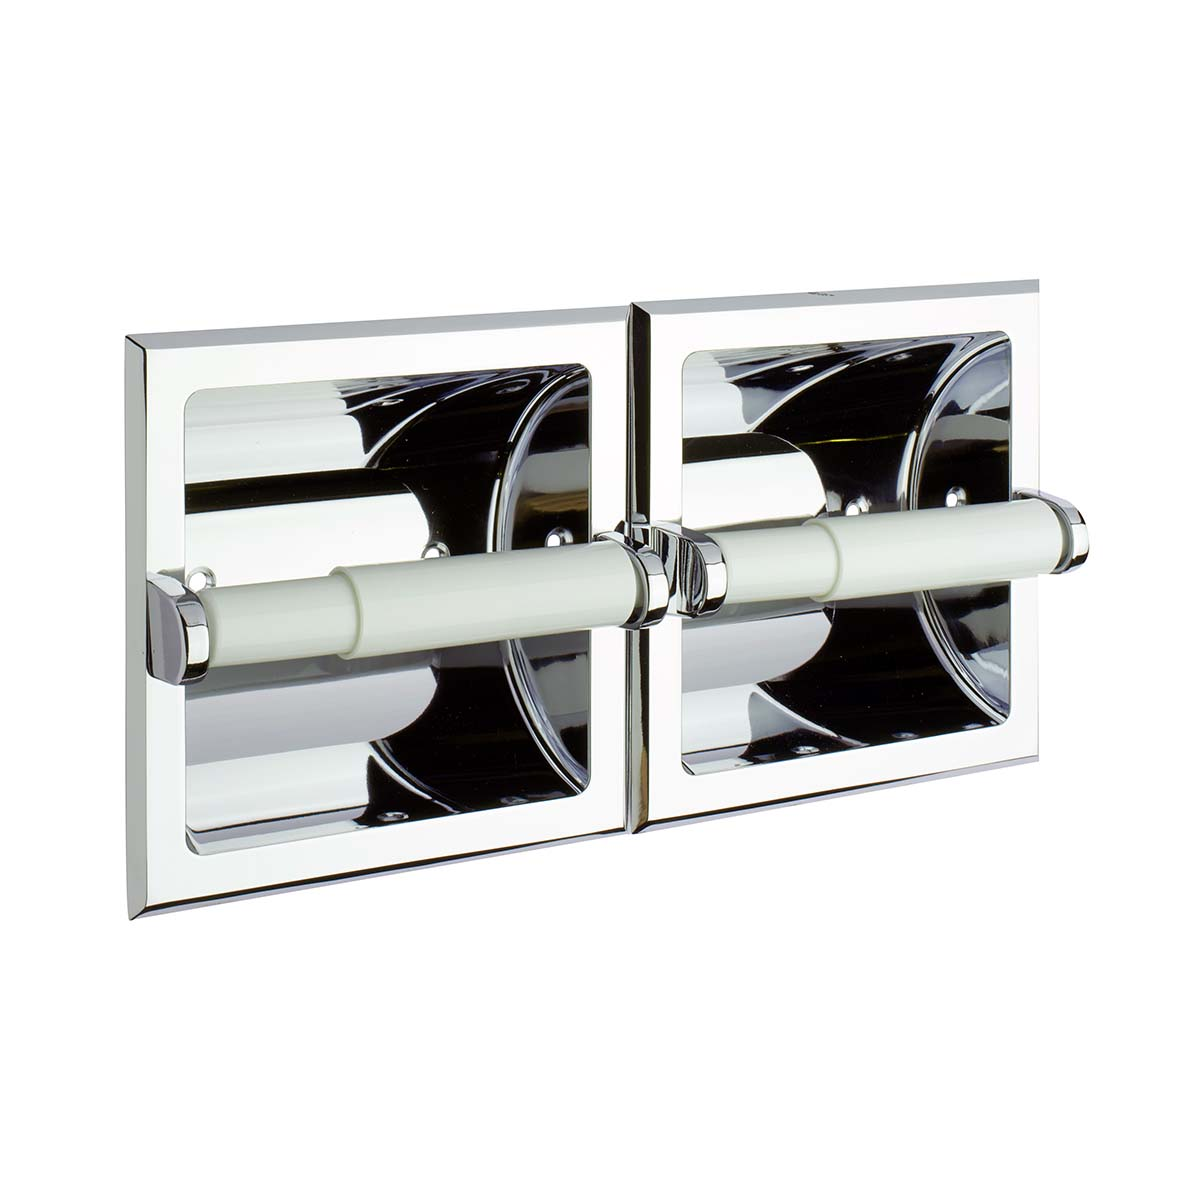 Twin Recessed Paper Roll Holder - Satin Nickel